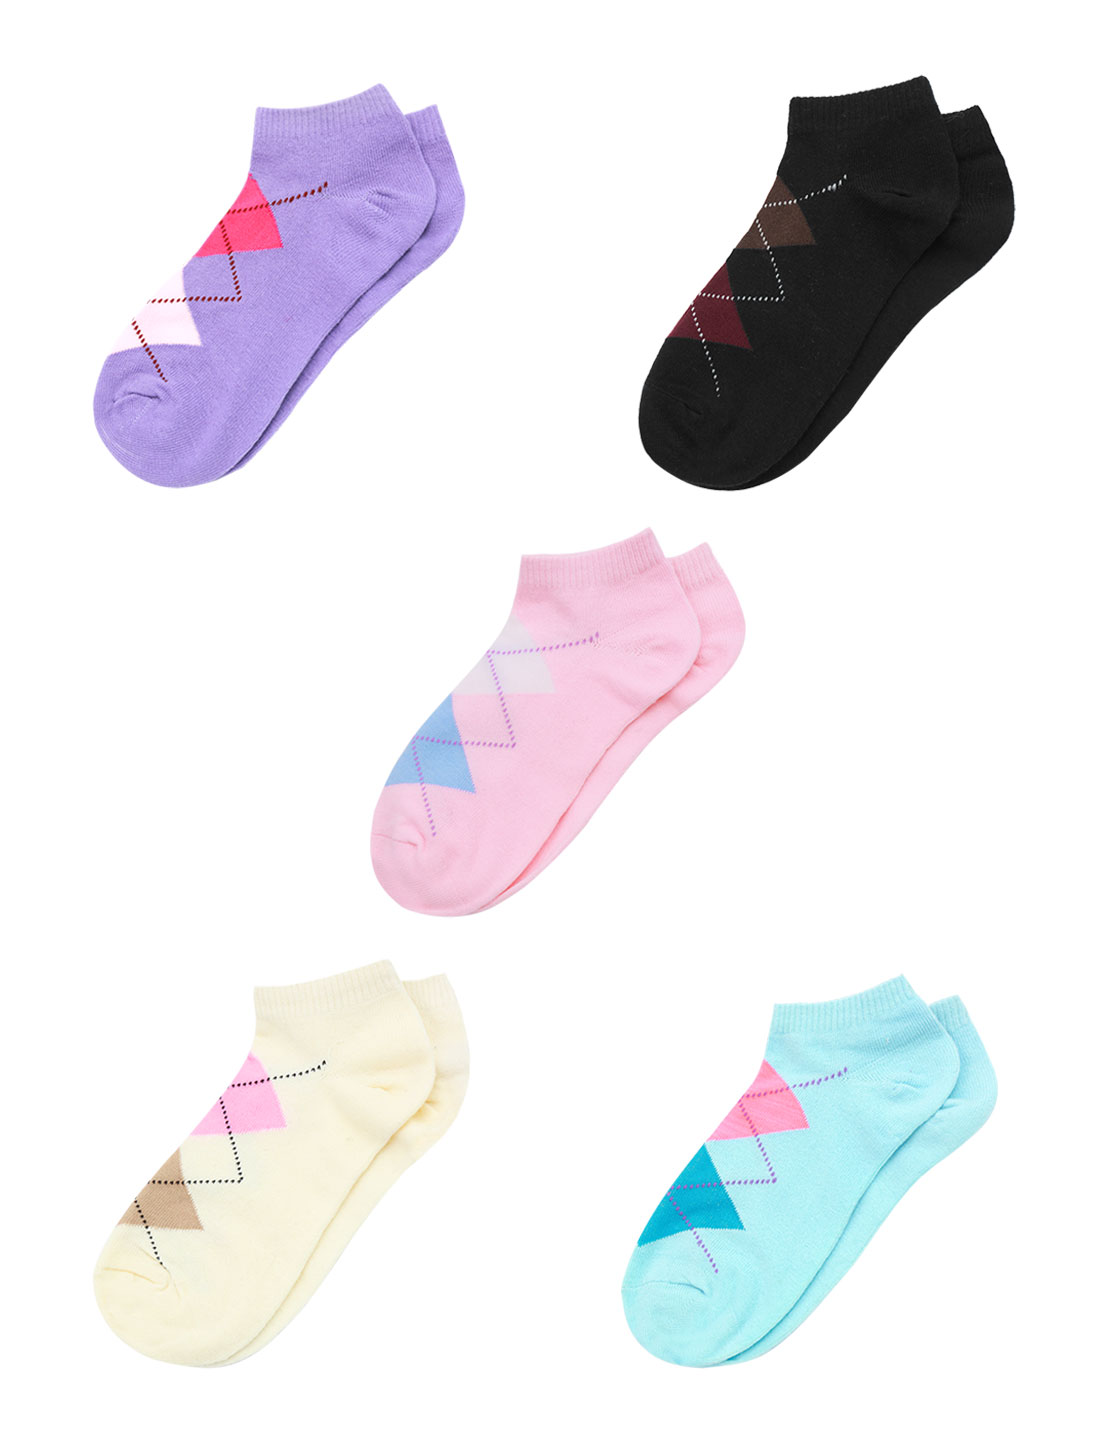 Women Argyle Pattern Stretchy Ankle Length Short Socks 5 Pairs Assorted Color